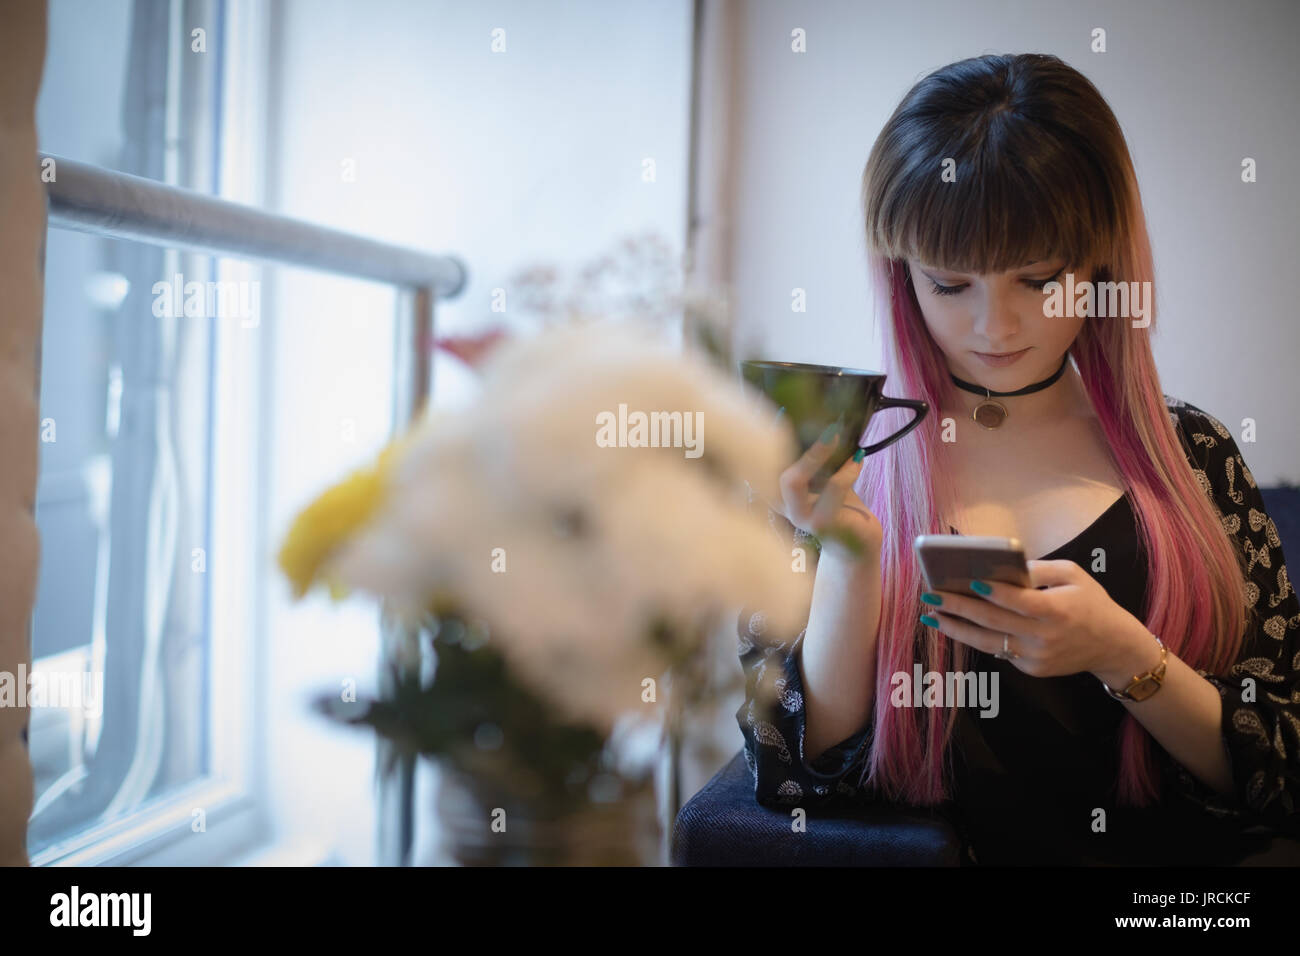 Beautiful woman having coffee while using mobile phone in cafe - Stock Image